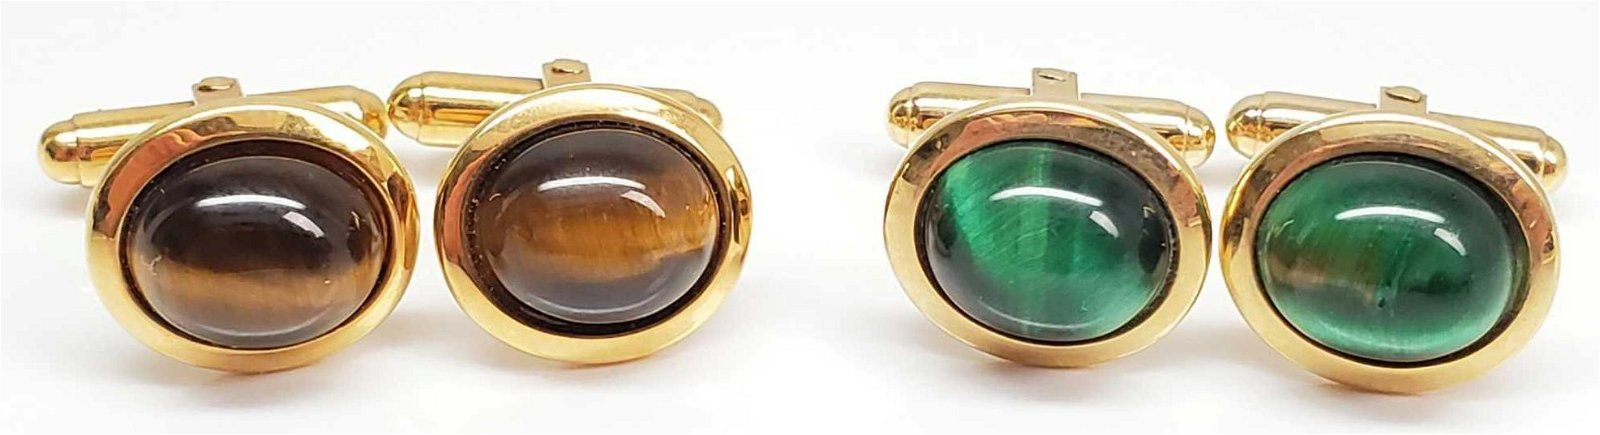 Lot of 2 Pairs : Tiger's Eye Cufflinks - Green and